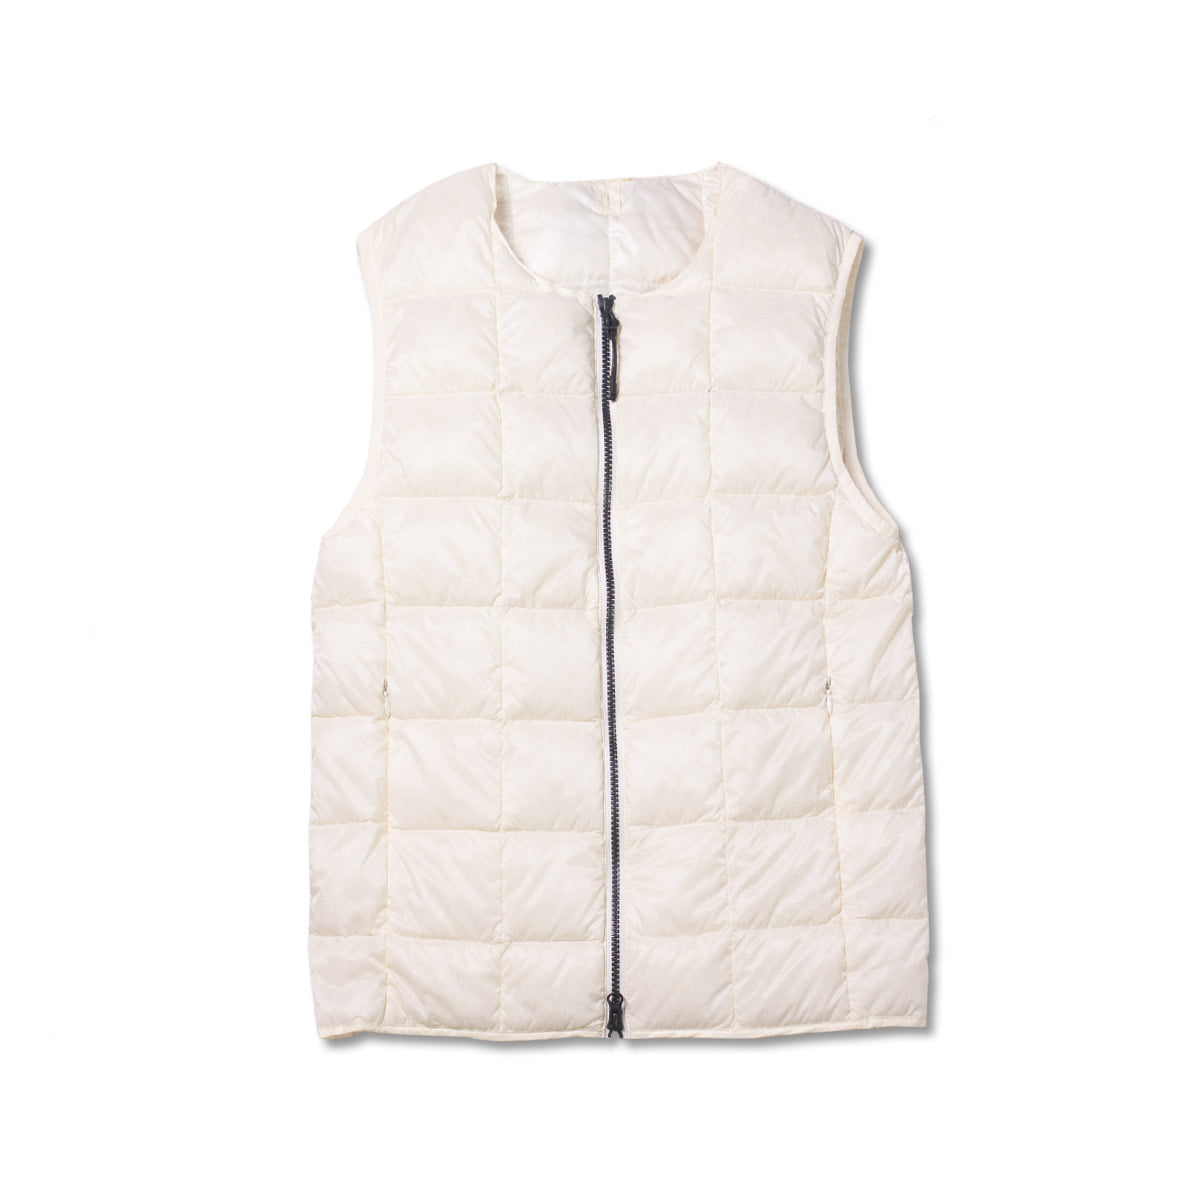 [TAION]  CREW NECK W ZIP DOWN VEST (TAI0N-005) 'WHITE'